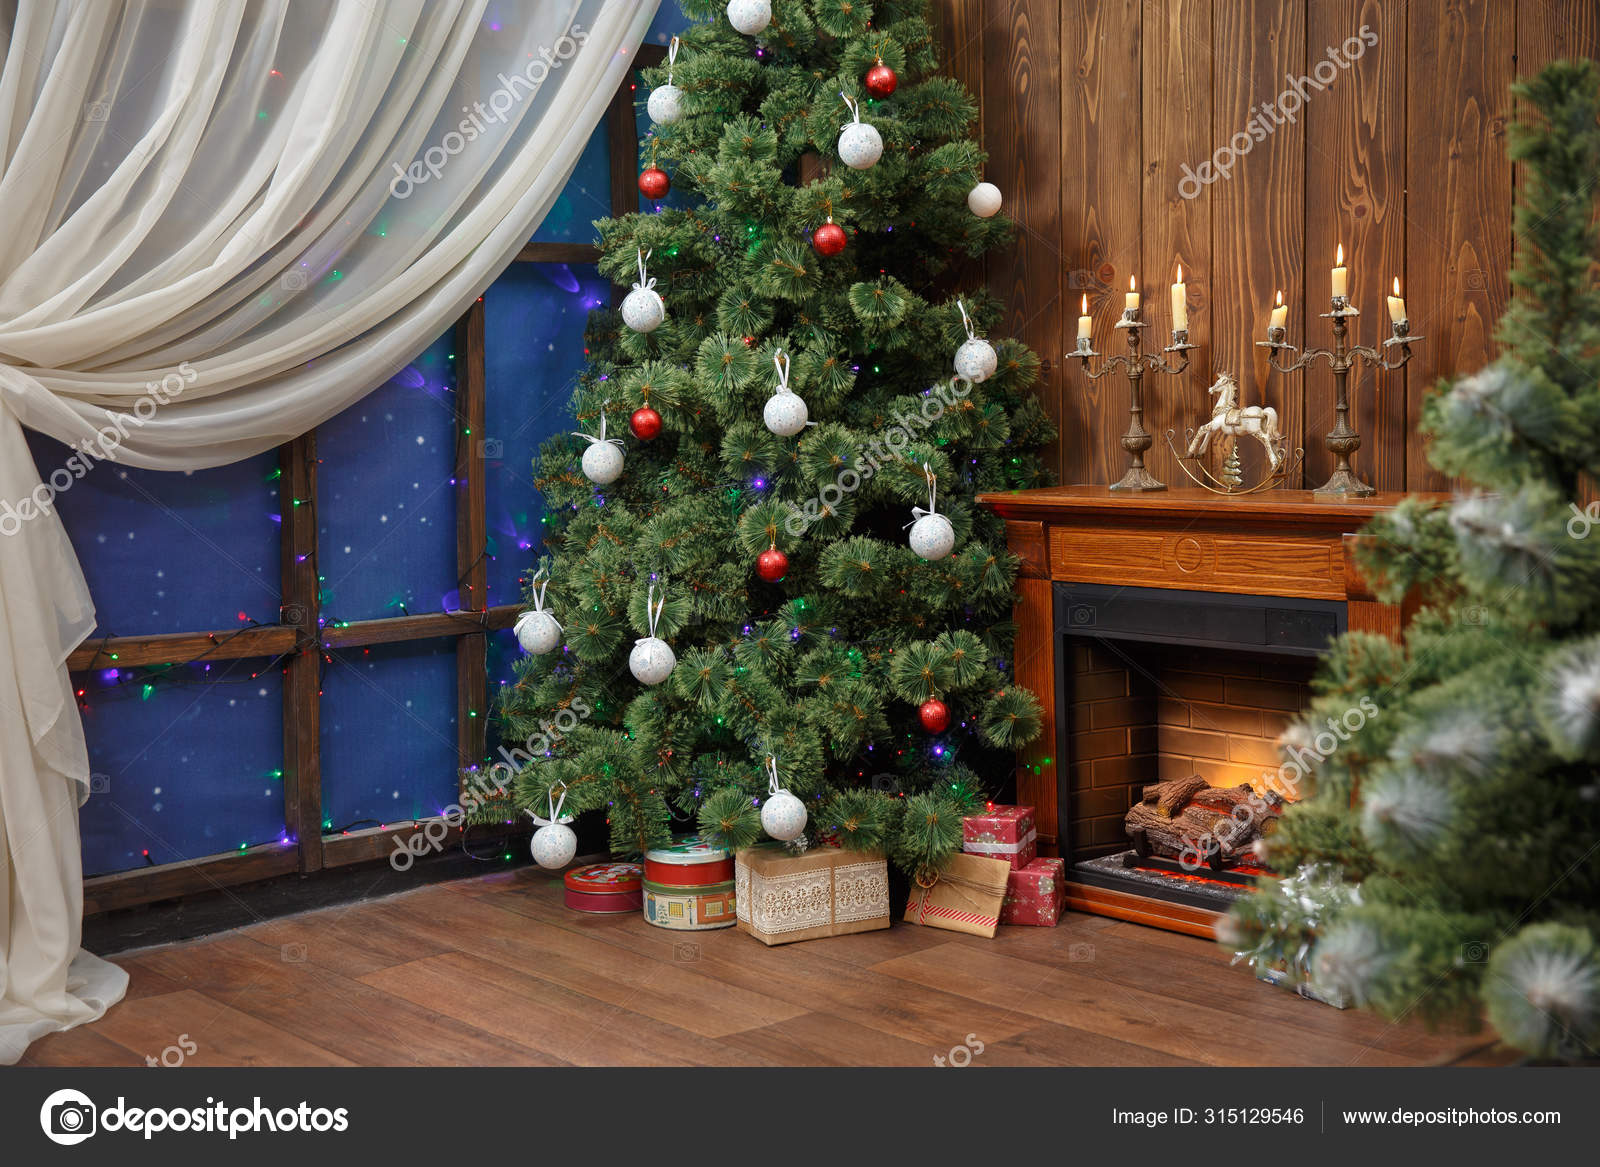 Christmas Interior With Toys And Lots Of Candles Wooden Fake Fireplace Christmas Tree Boxes In Studio Stock Photo C Petrenkoalyona 315129546